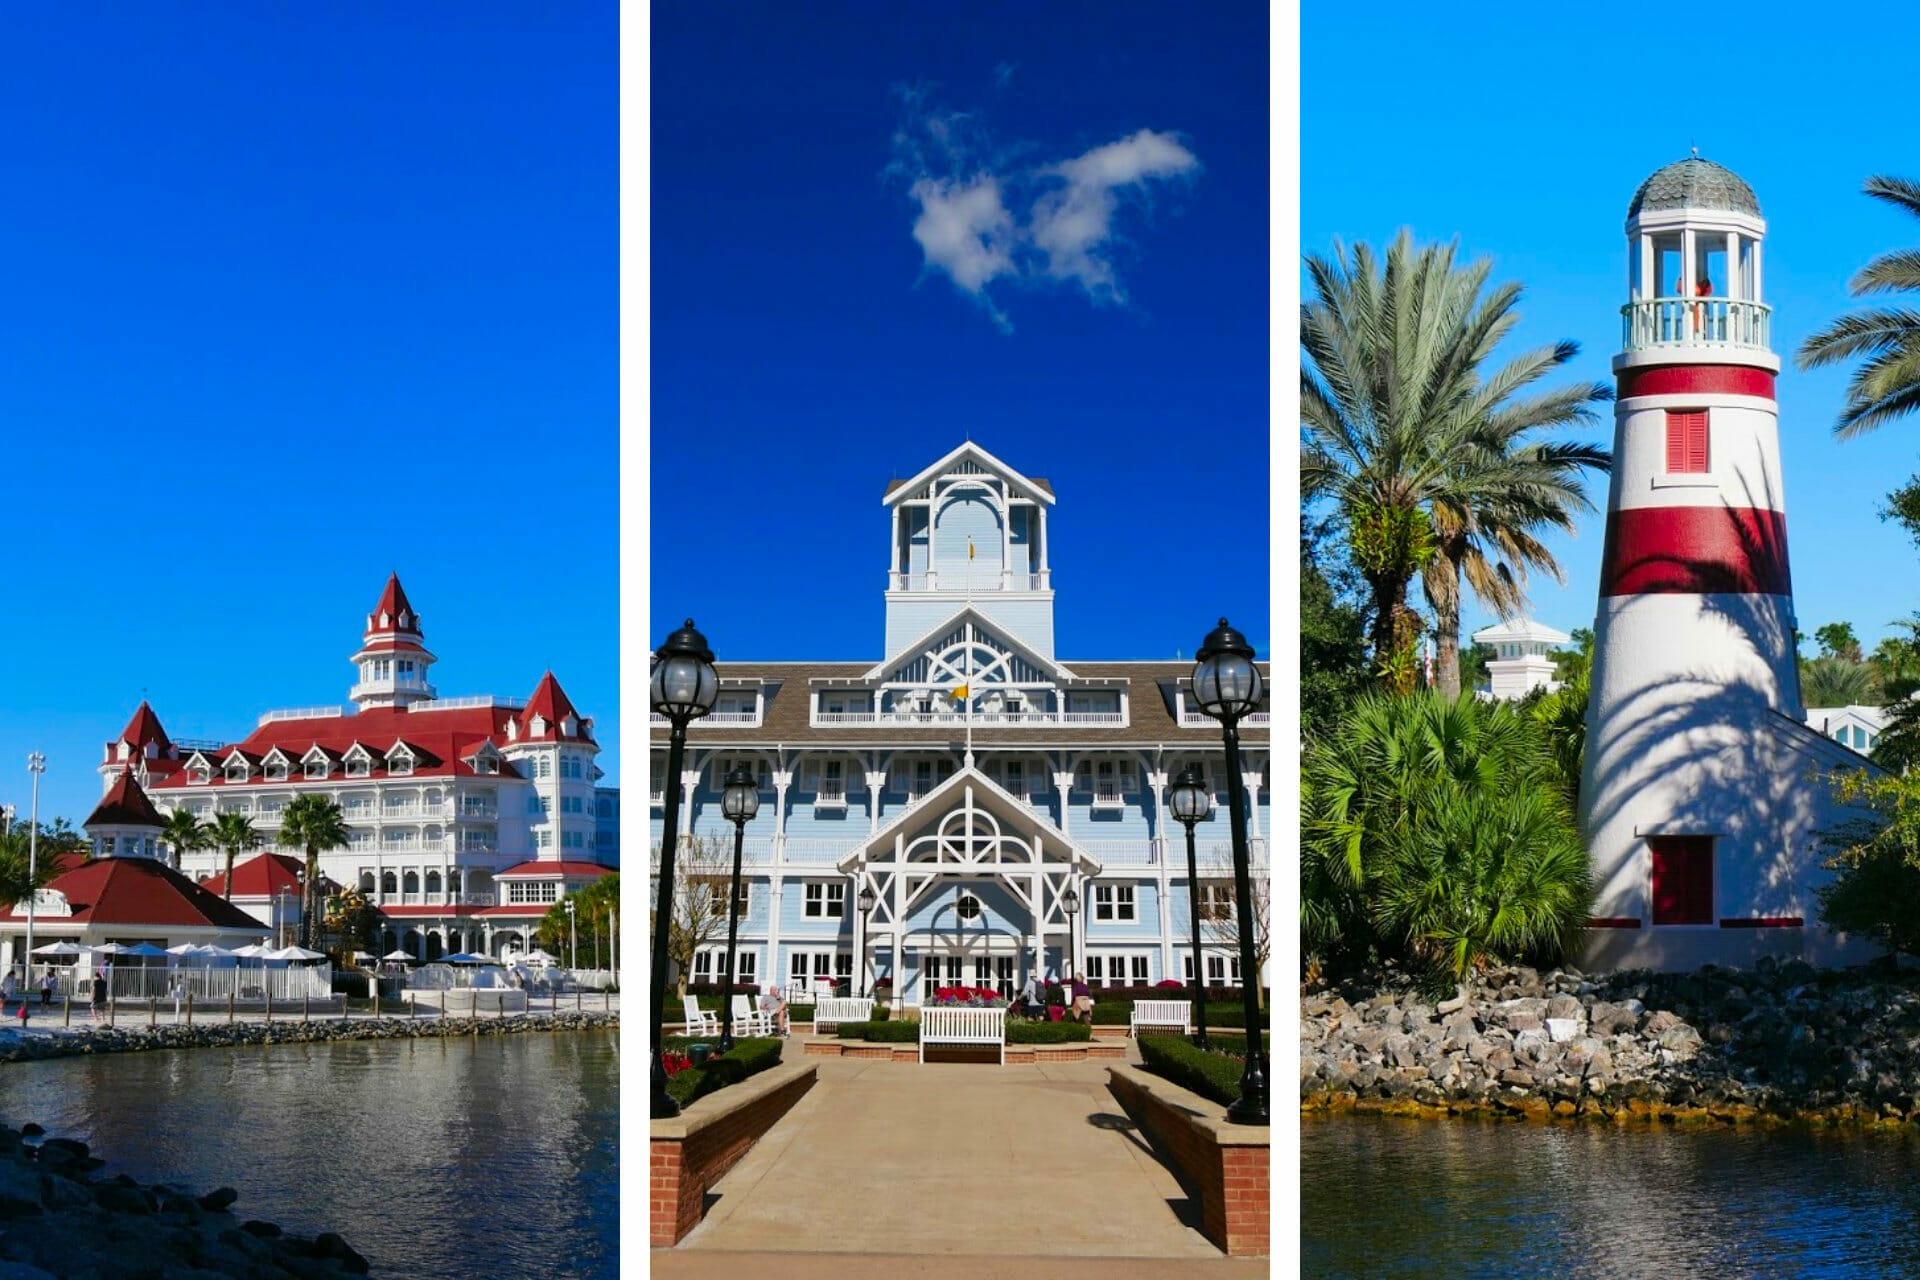 Best Disney Deluxe Resorts 2021 (and Where Not to Stay) via @allamericanatlas